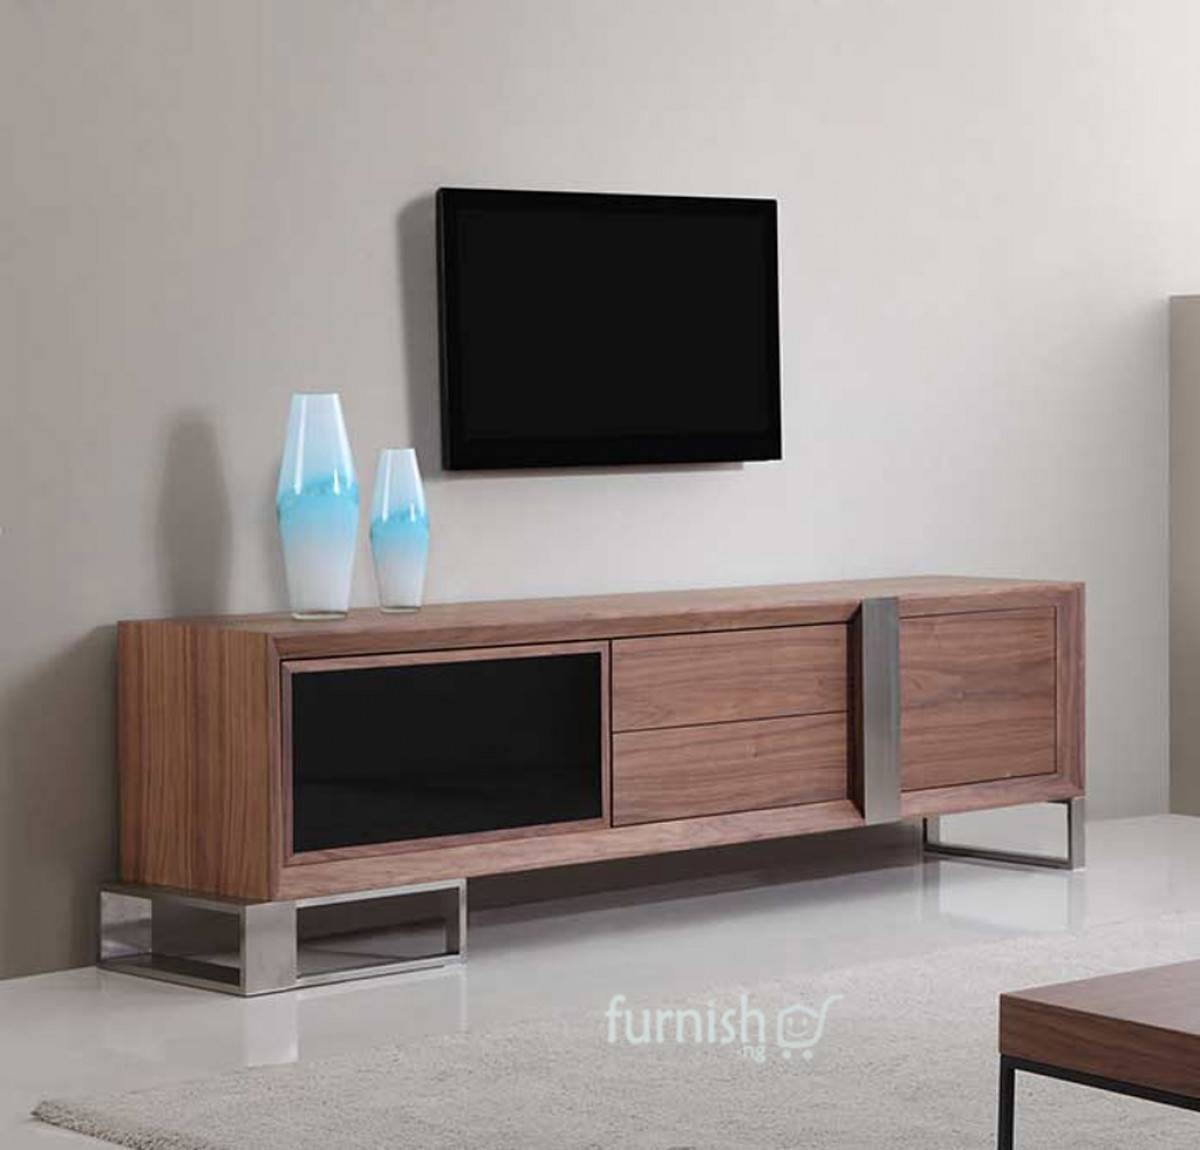 Buy Lovely Adaobi Extra Long Modern Tv Stand | Furnish.ng inside Extra Long Tv Stands (Image 1 of 15)